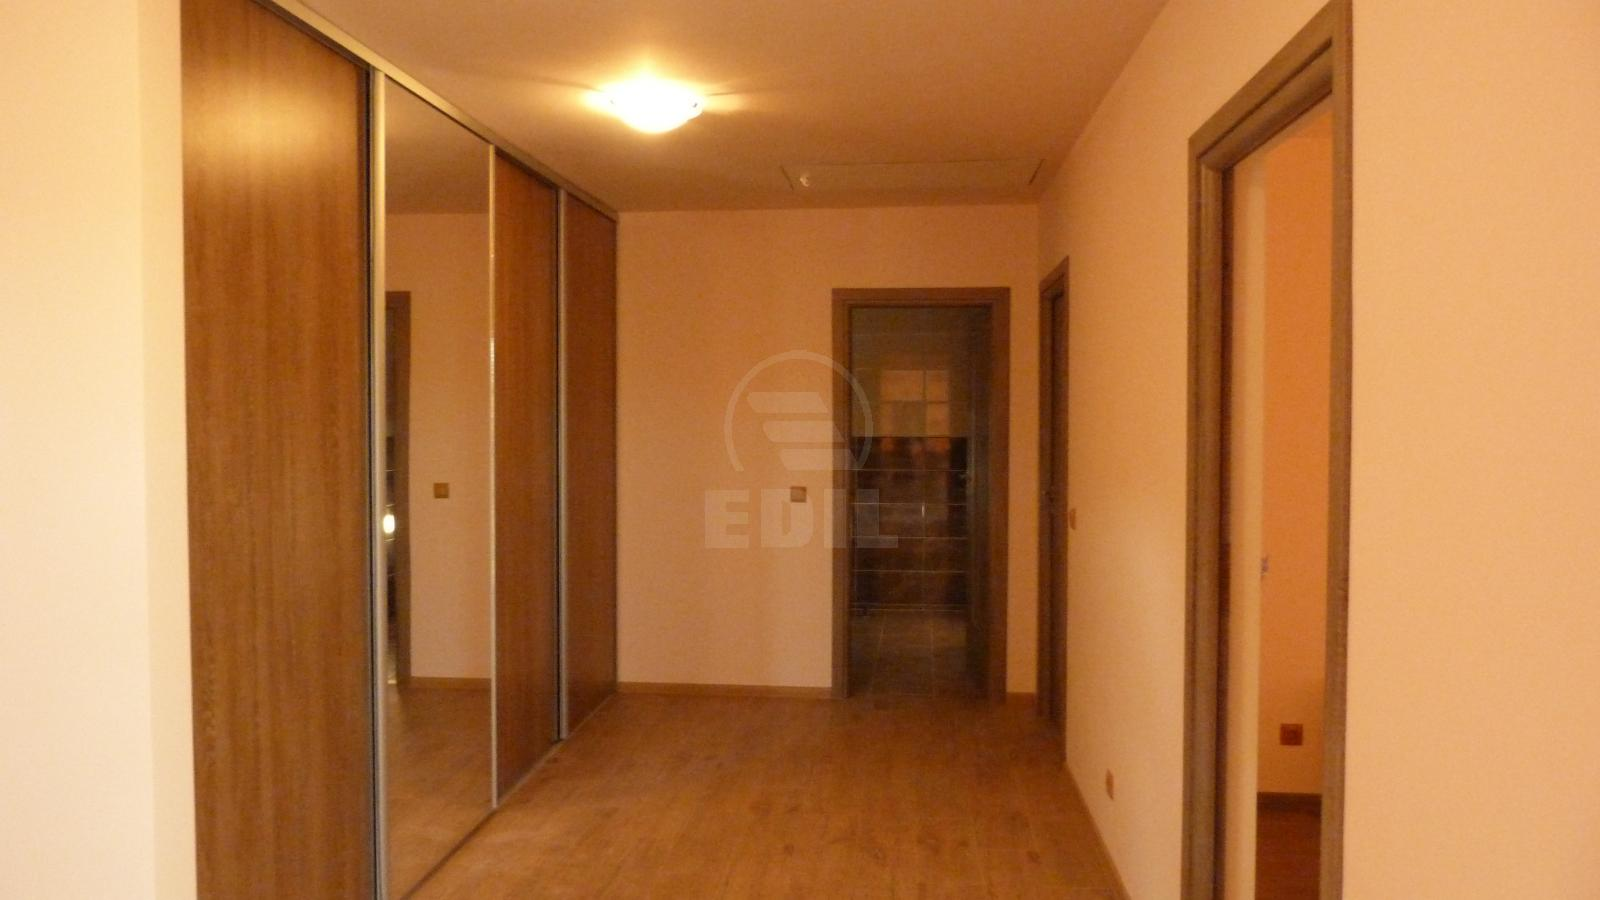 House for sale 4 rooms, CACJ277896-4